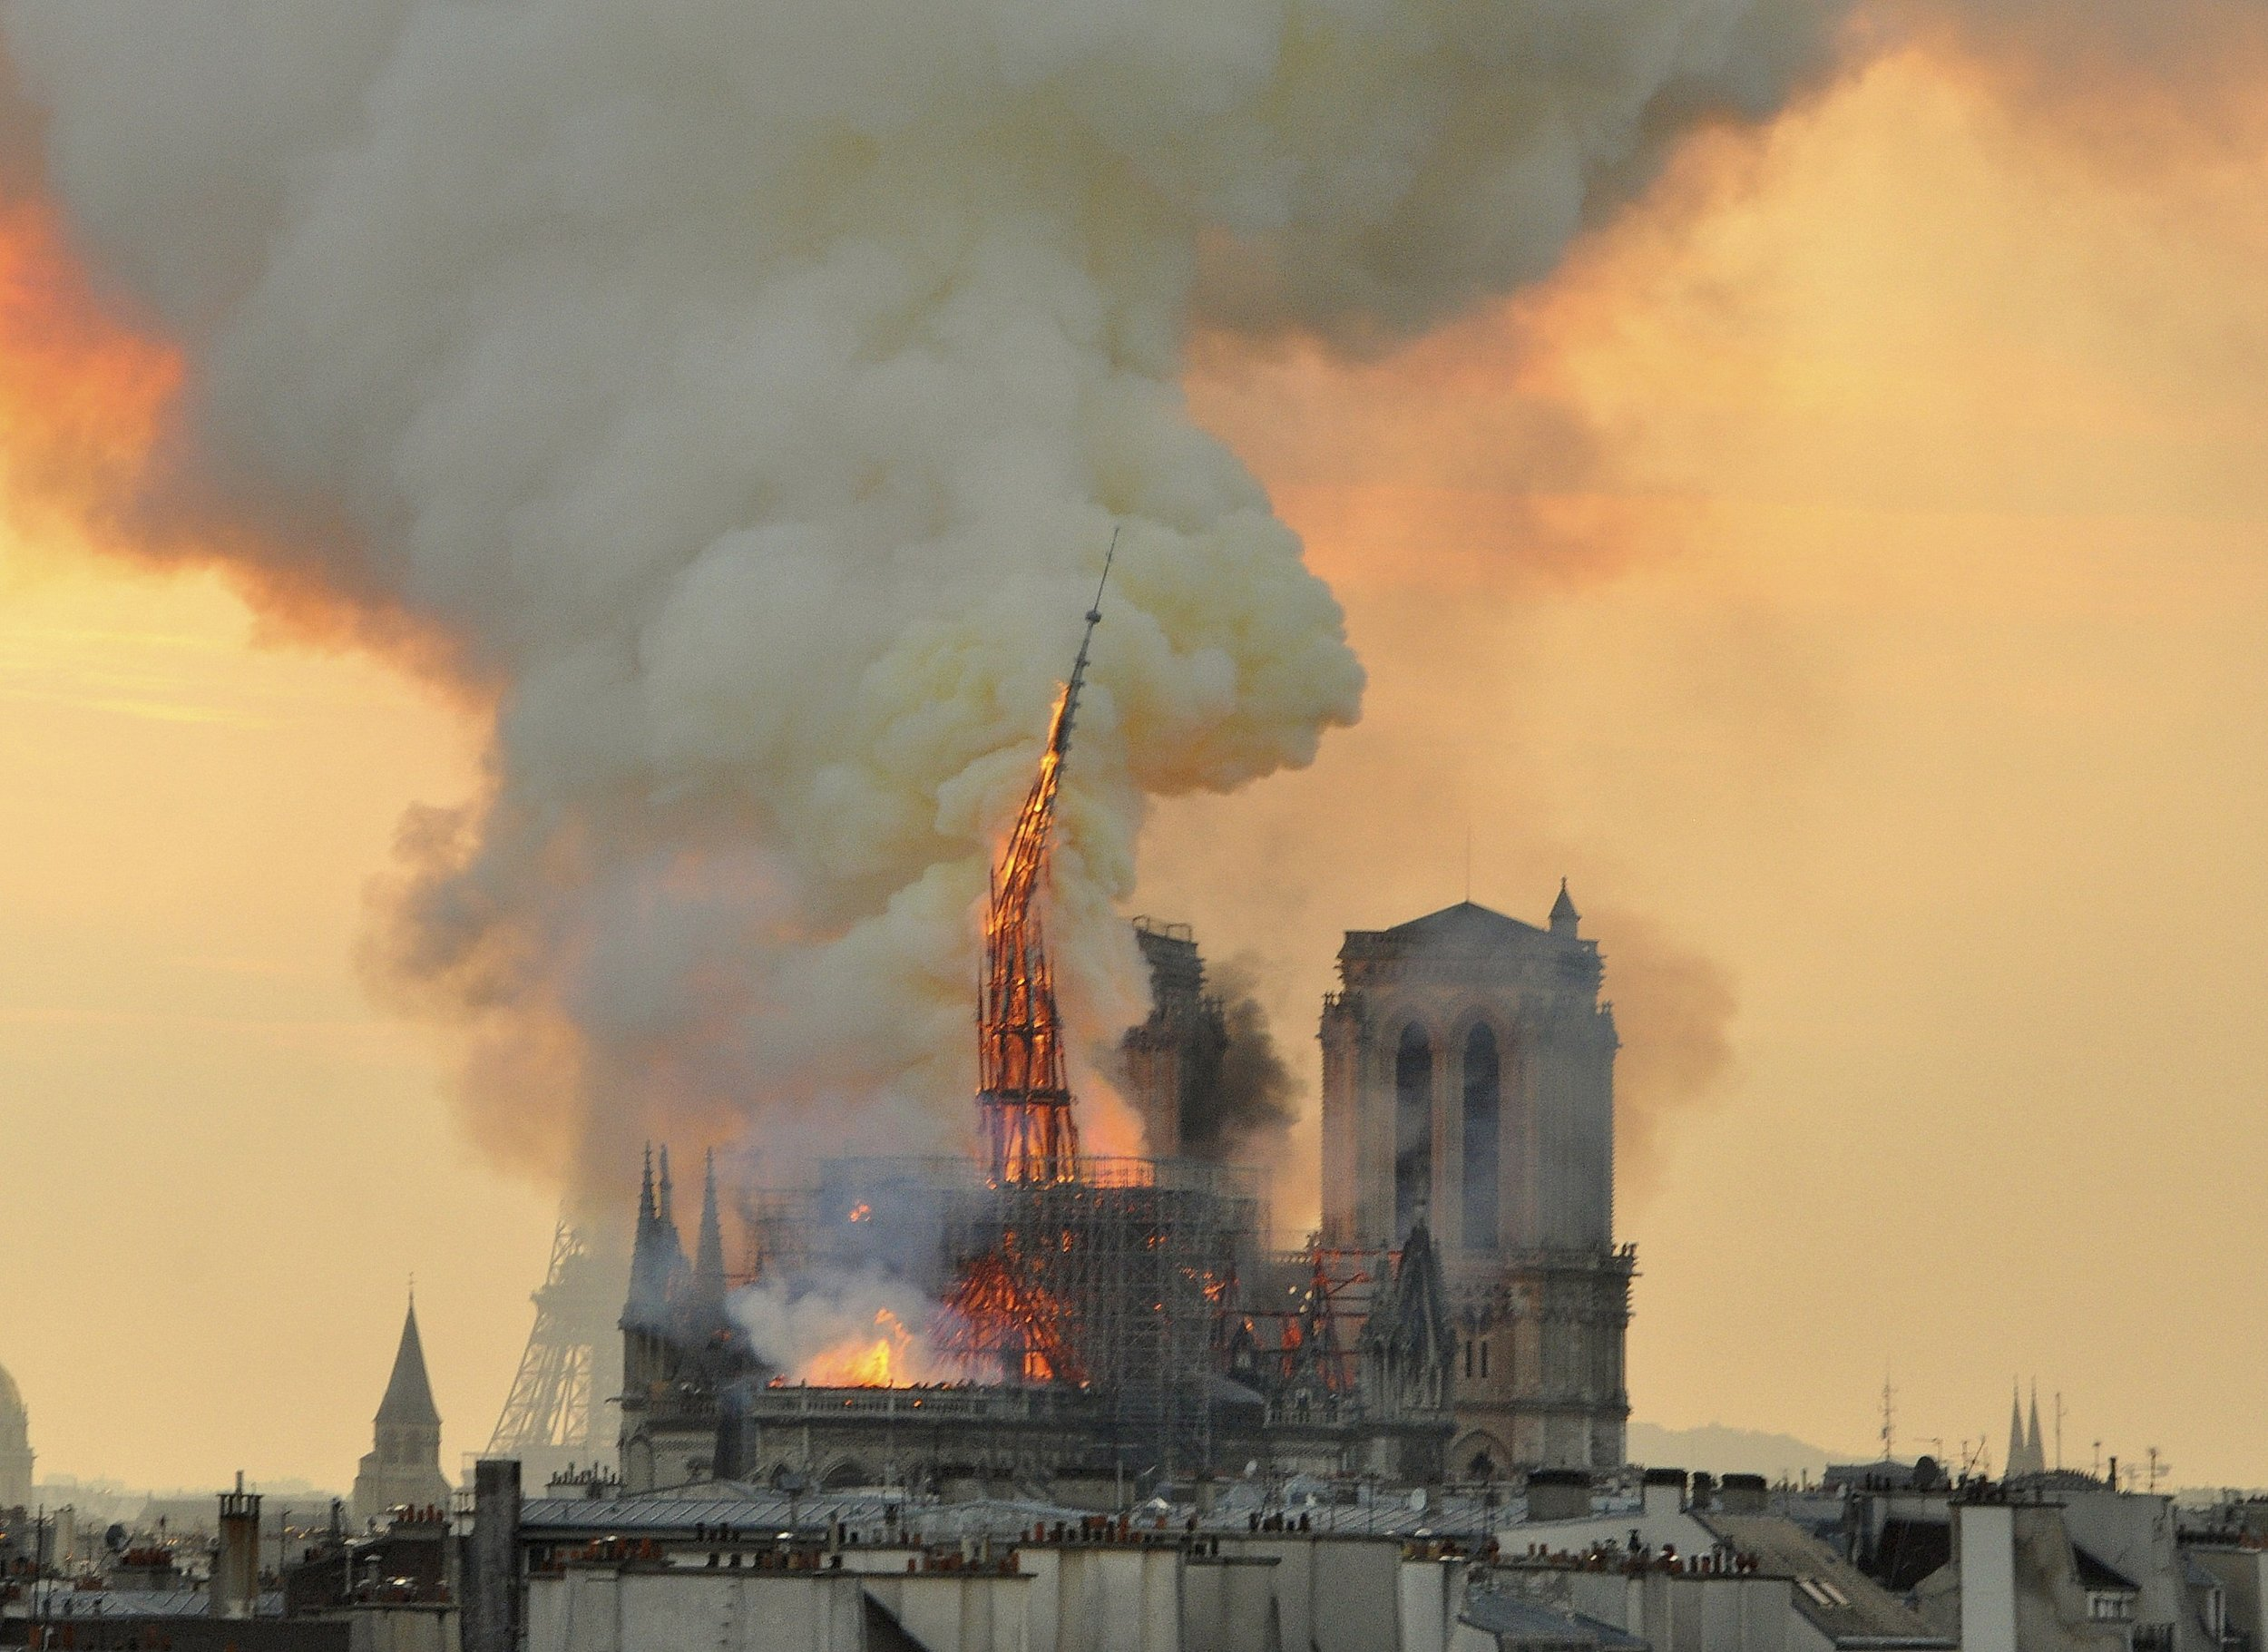 Flames and smoke rising from the blaze as the spire starts to topple on Notre Dame cathedral in Paris, Monday, April 15, 2019. (AP Photo/Thierry Mallet)